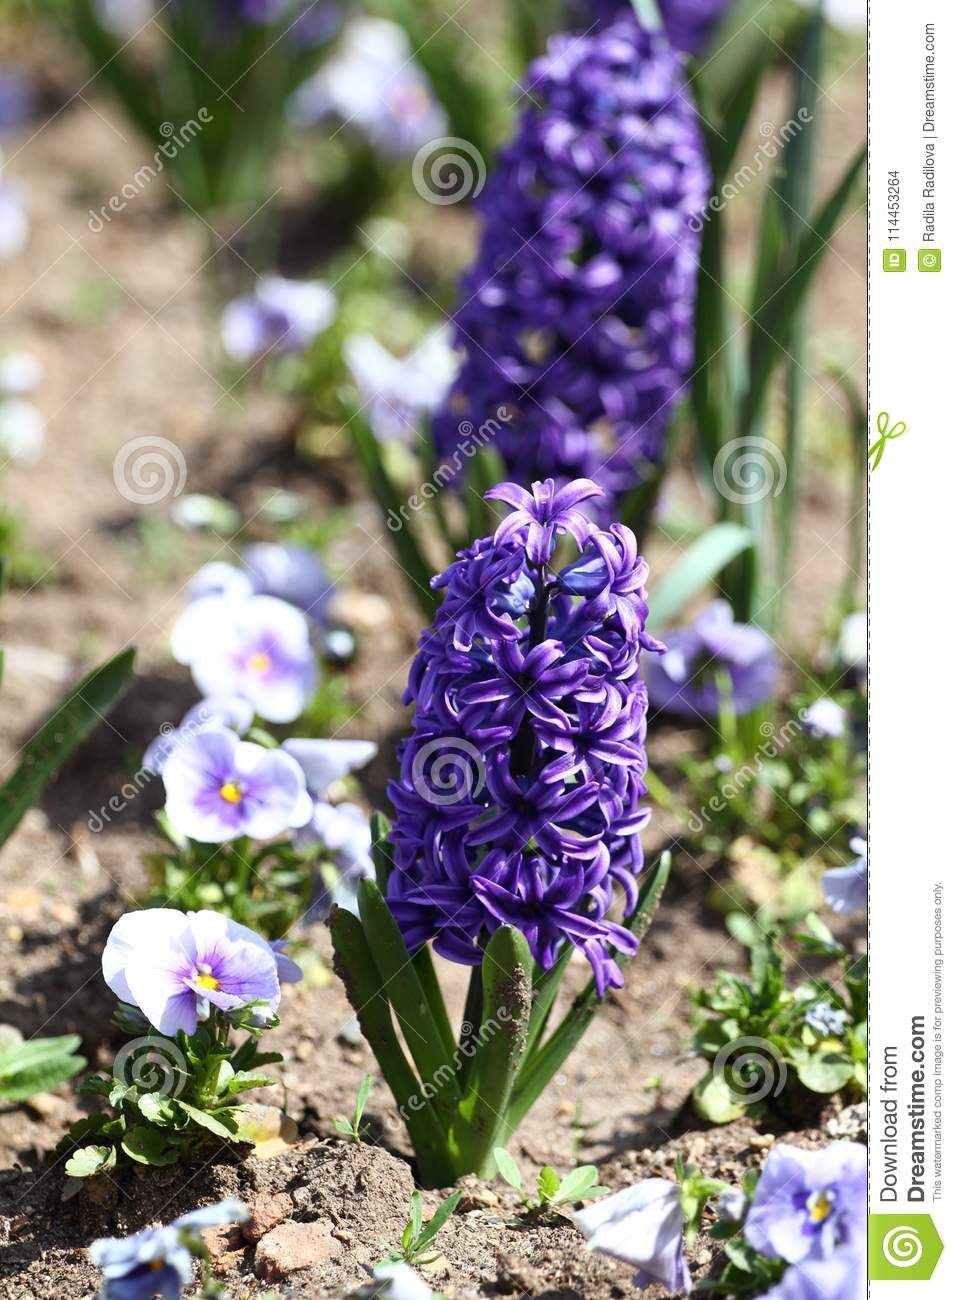 Hyacinth Field Of Colorful Spring Flowers Hyacinth On Sunlight